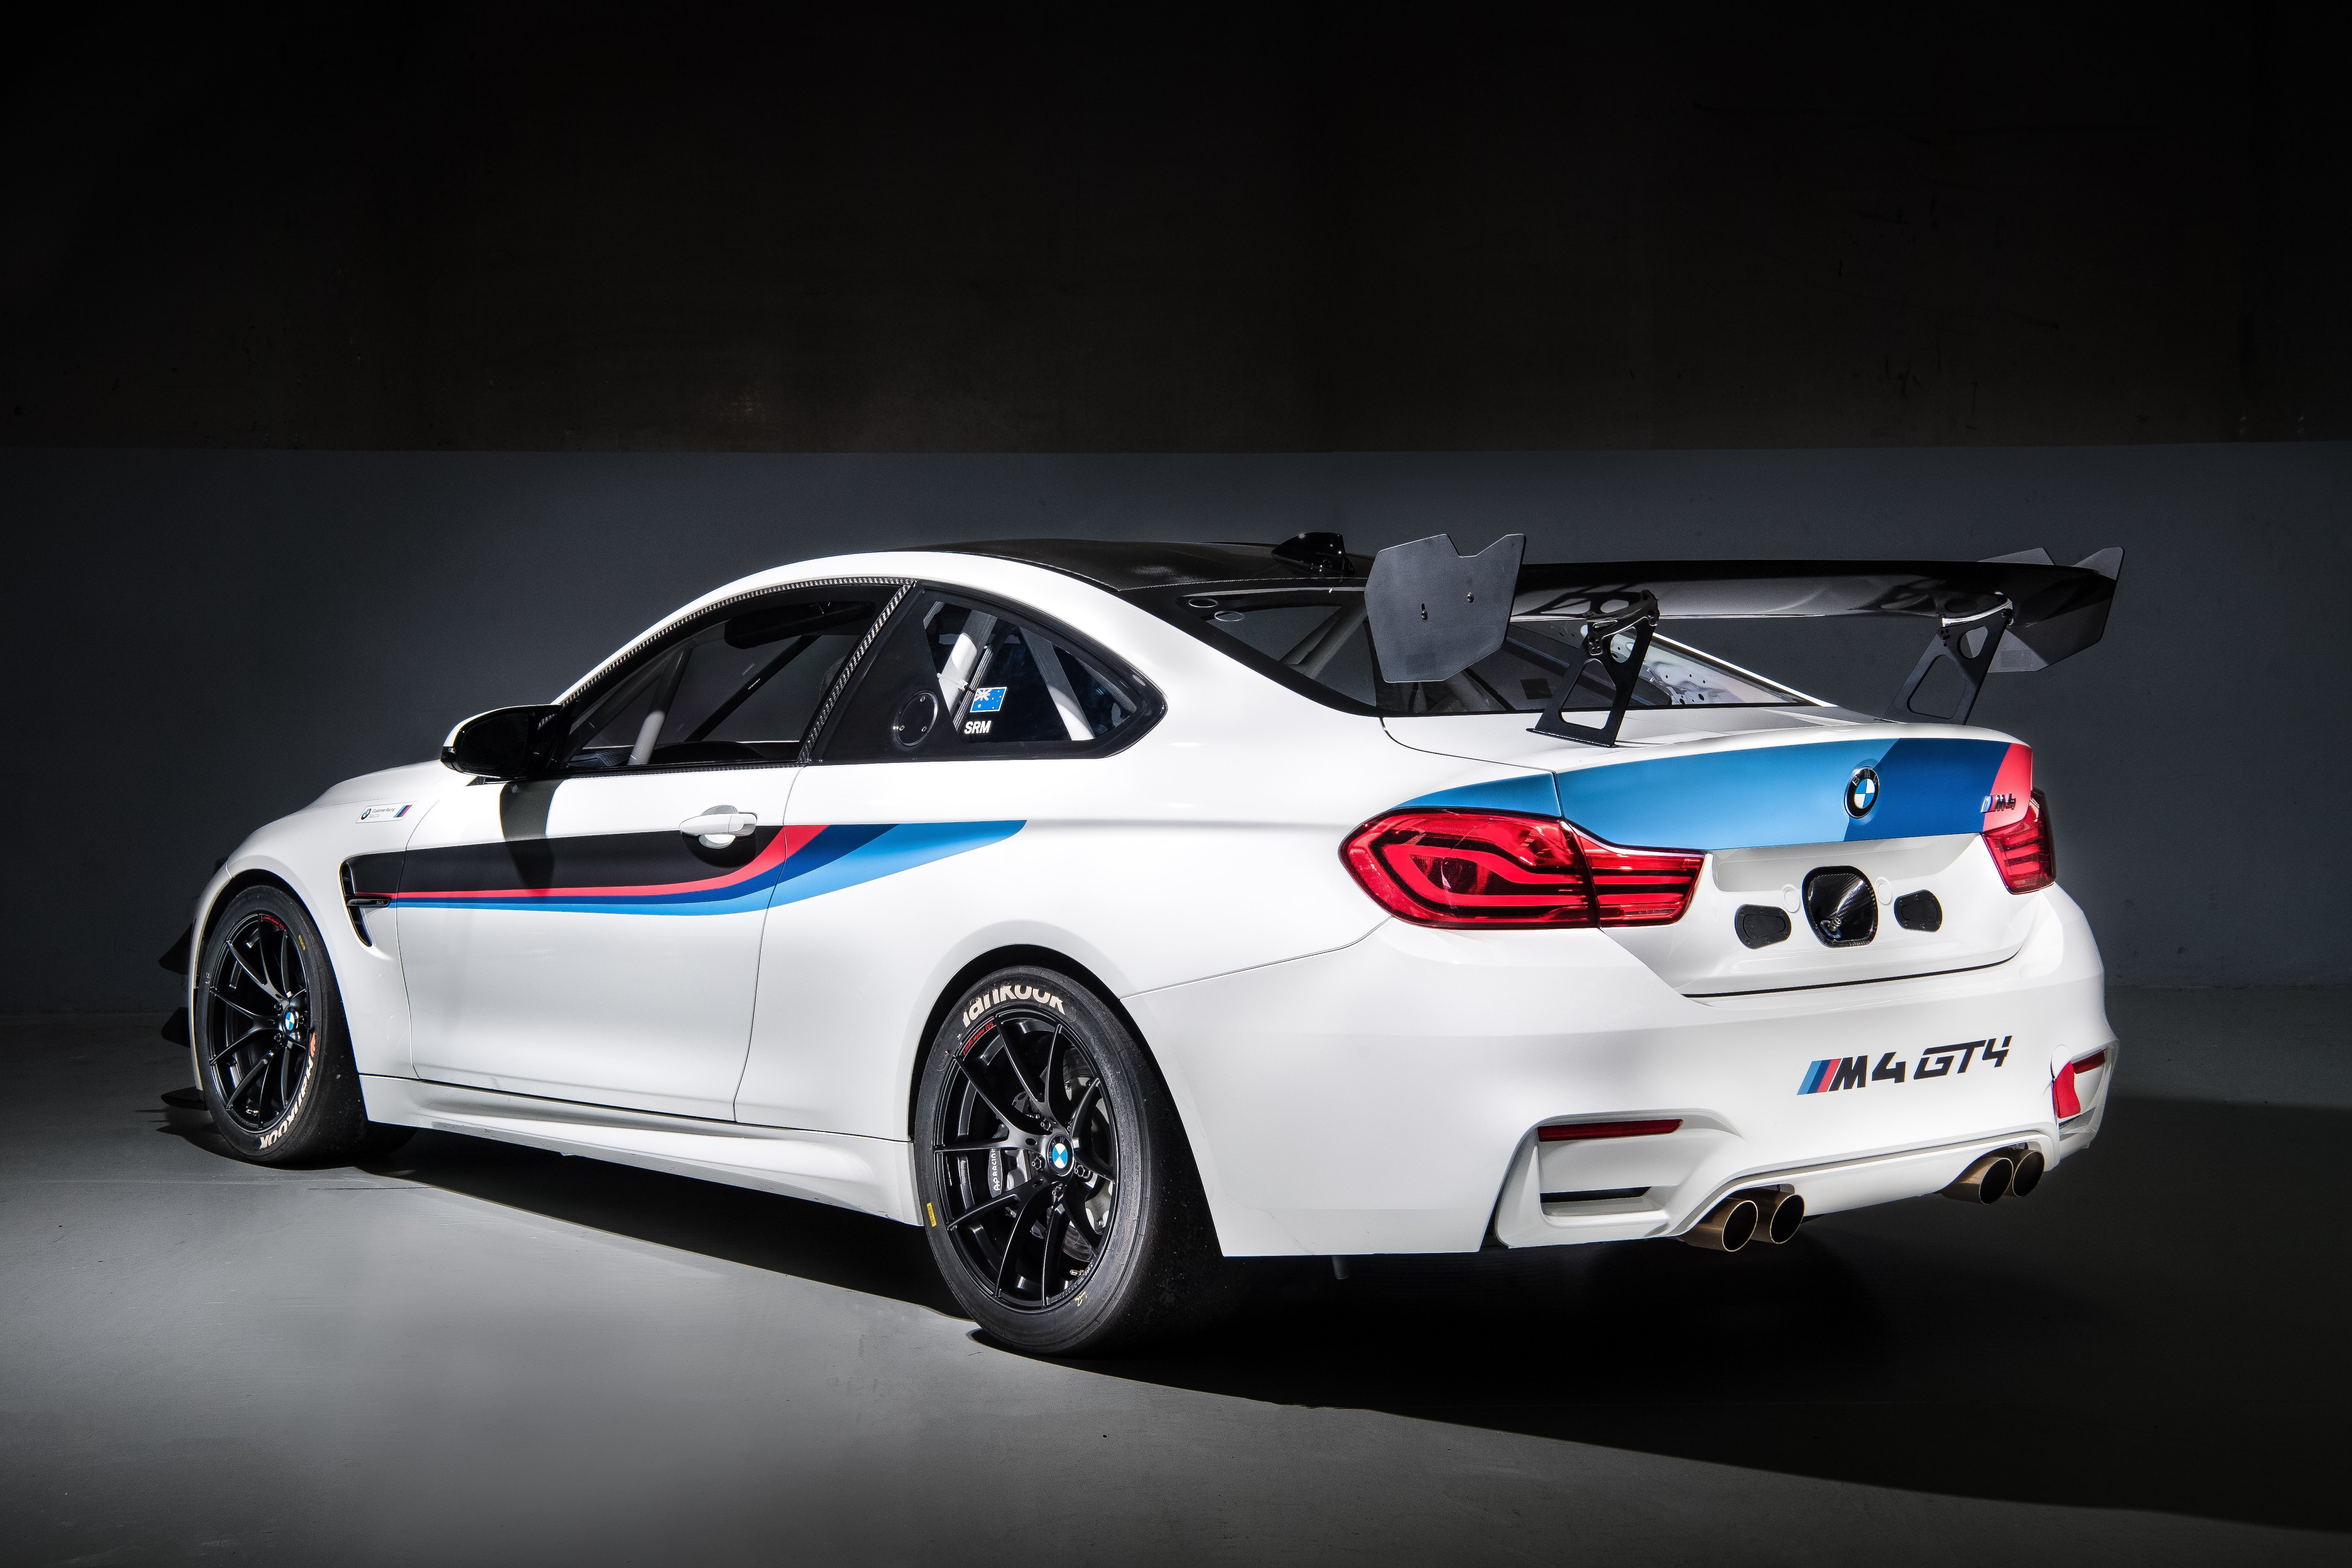 Latest Bmw M4 Gt4 Race Car Hits Australia Photos Free Download